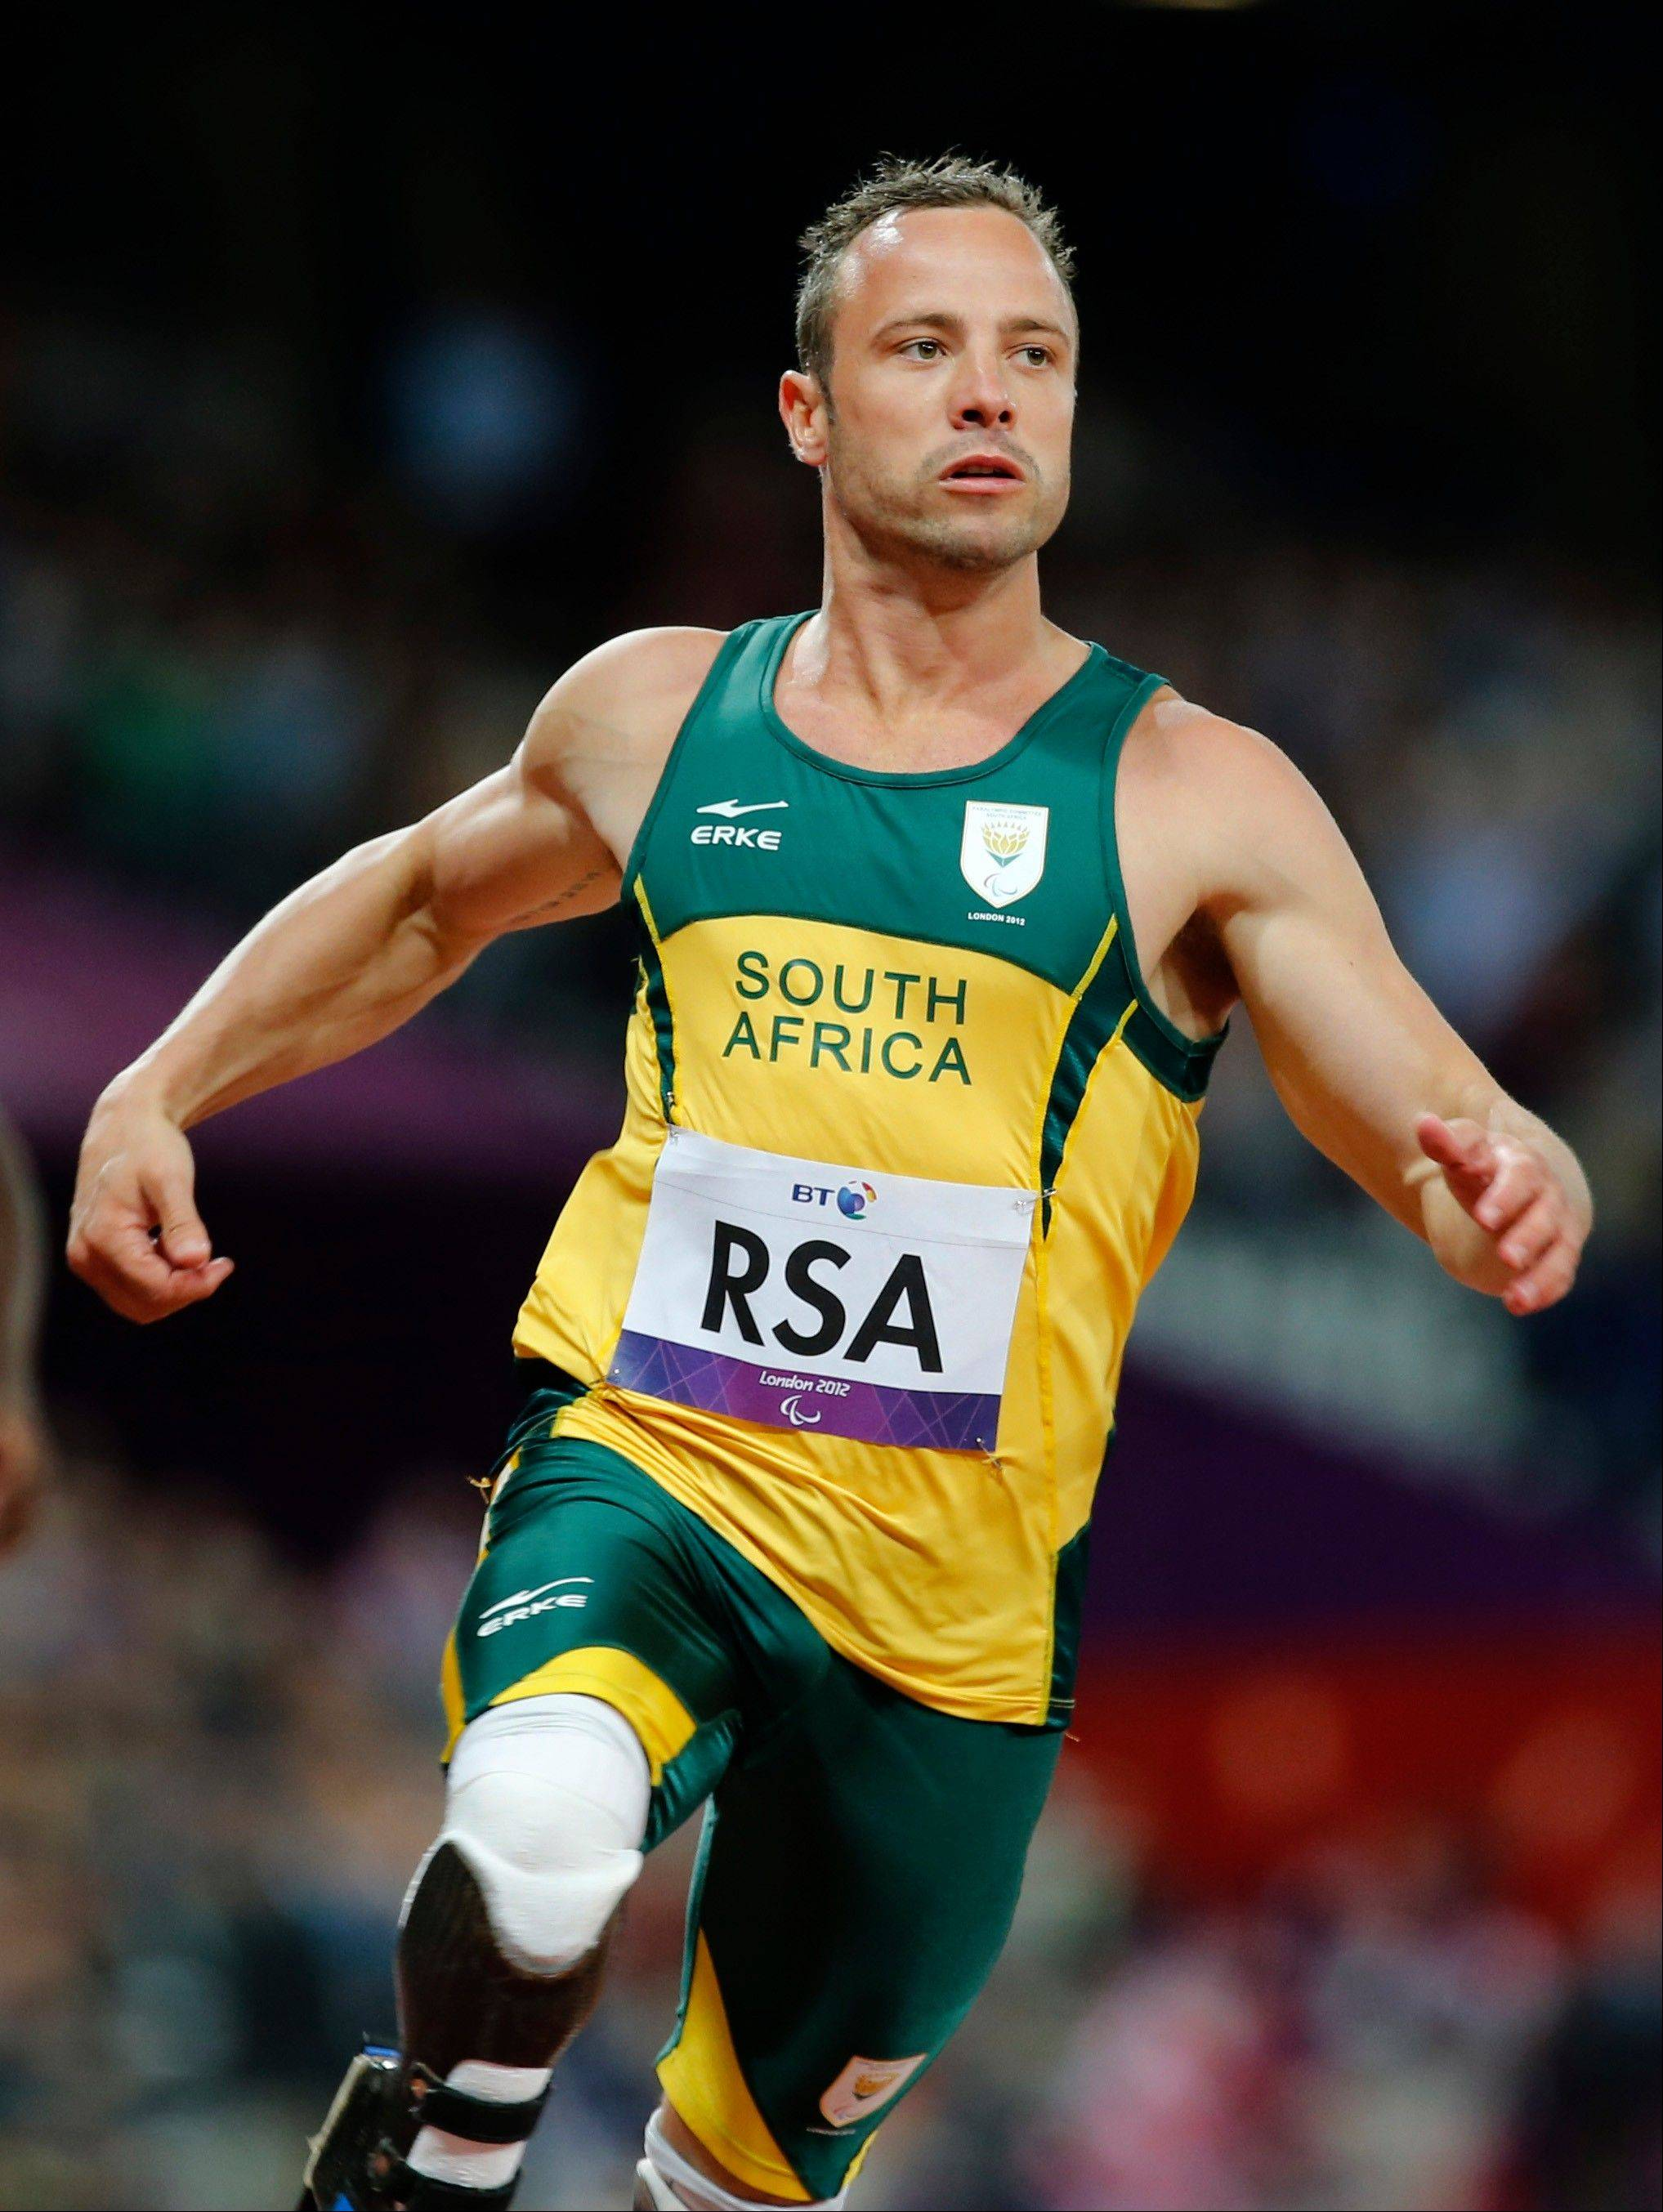 Spellman's Scorecard: News on Pistorius tough to take